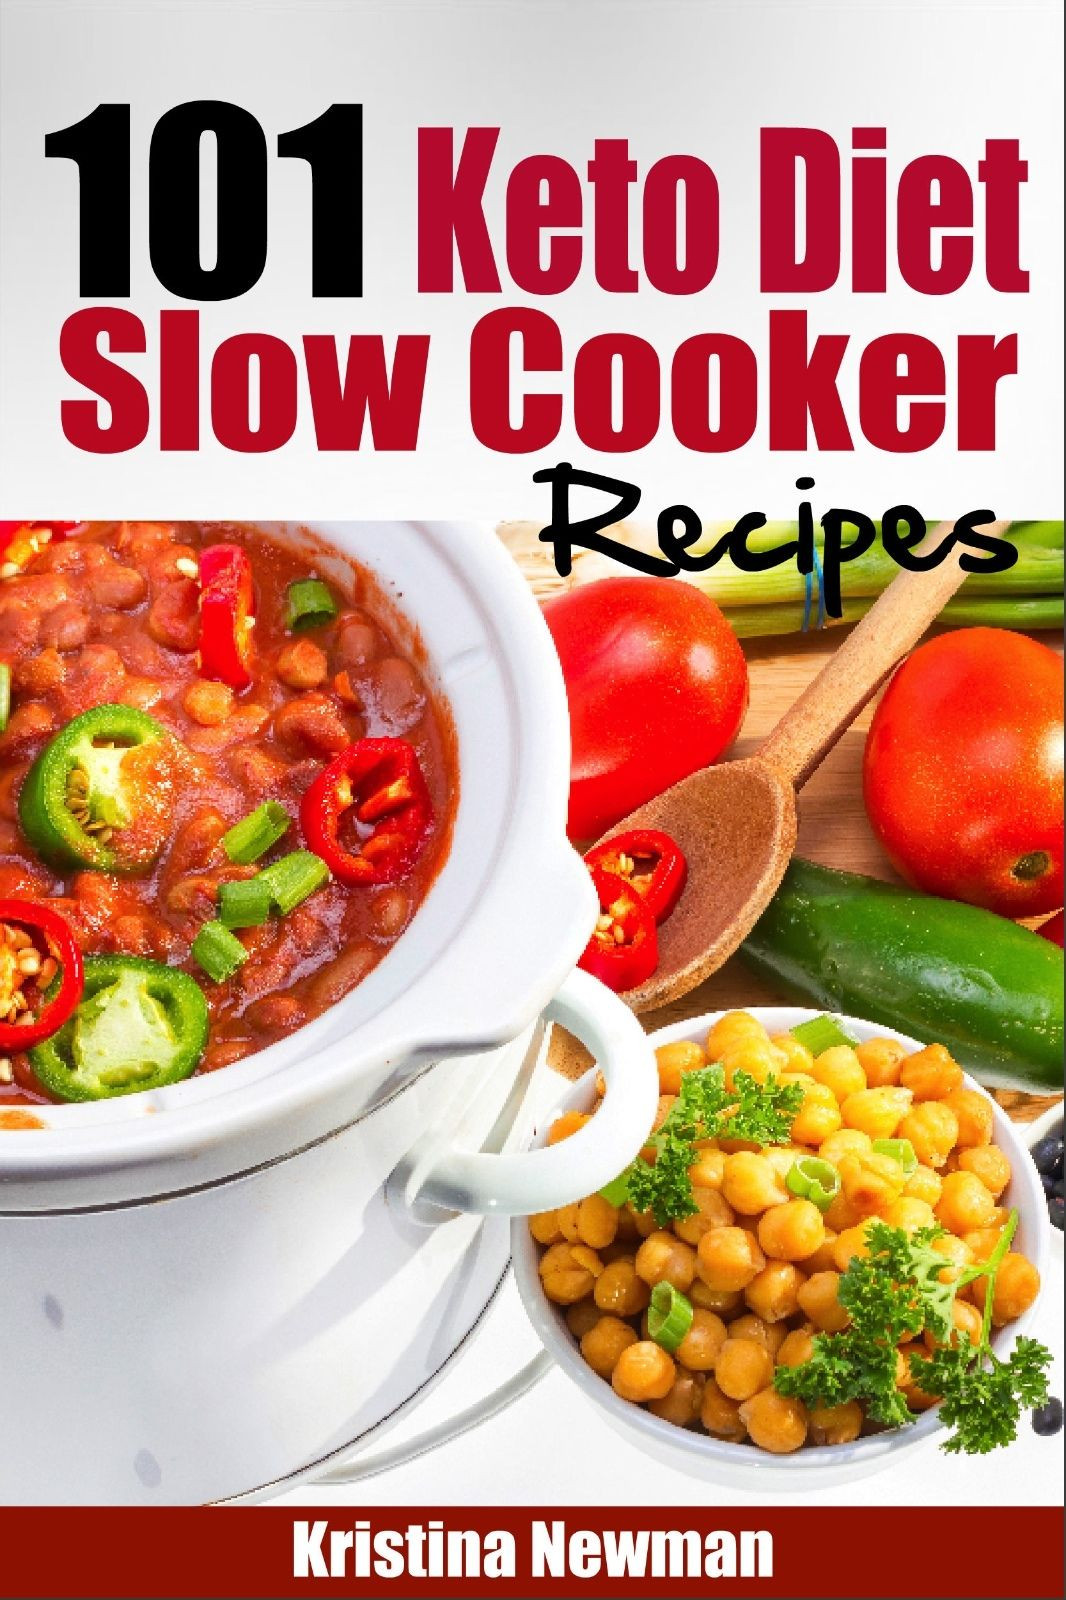 Keto Diet Recipes Free  101 Ketogenic Diet Slow Cooker Recipes Quick & Easy Low